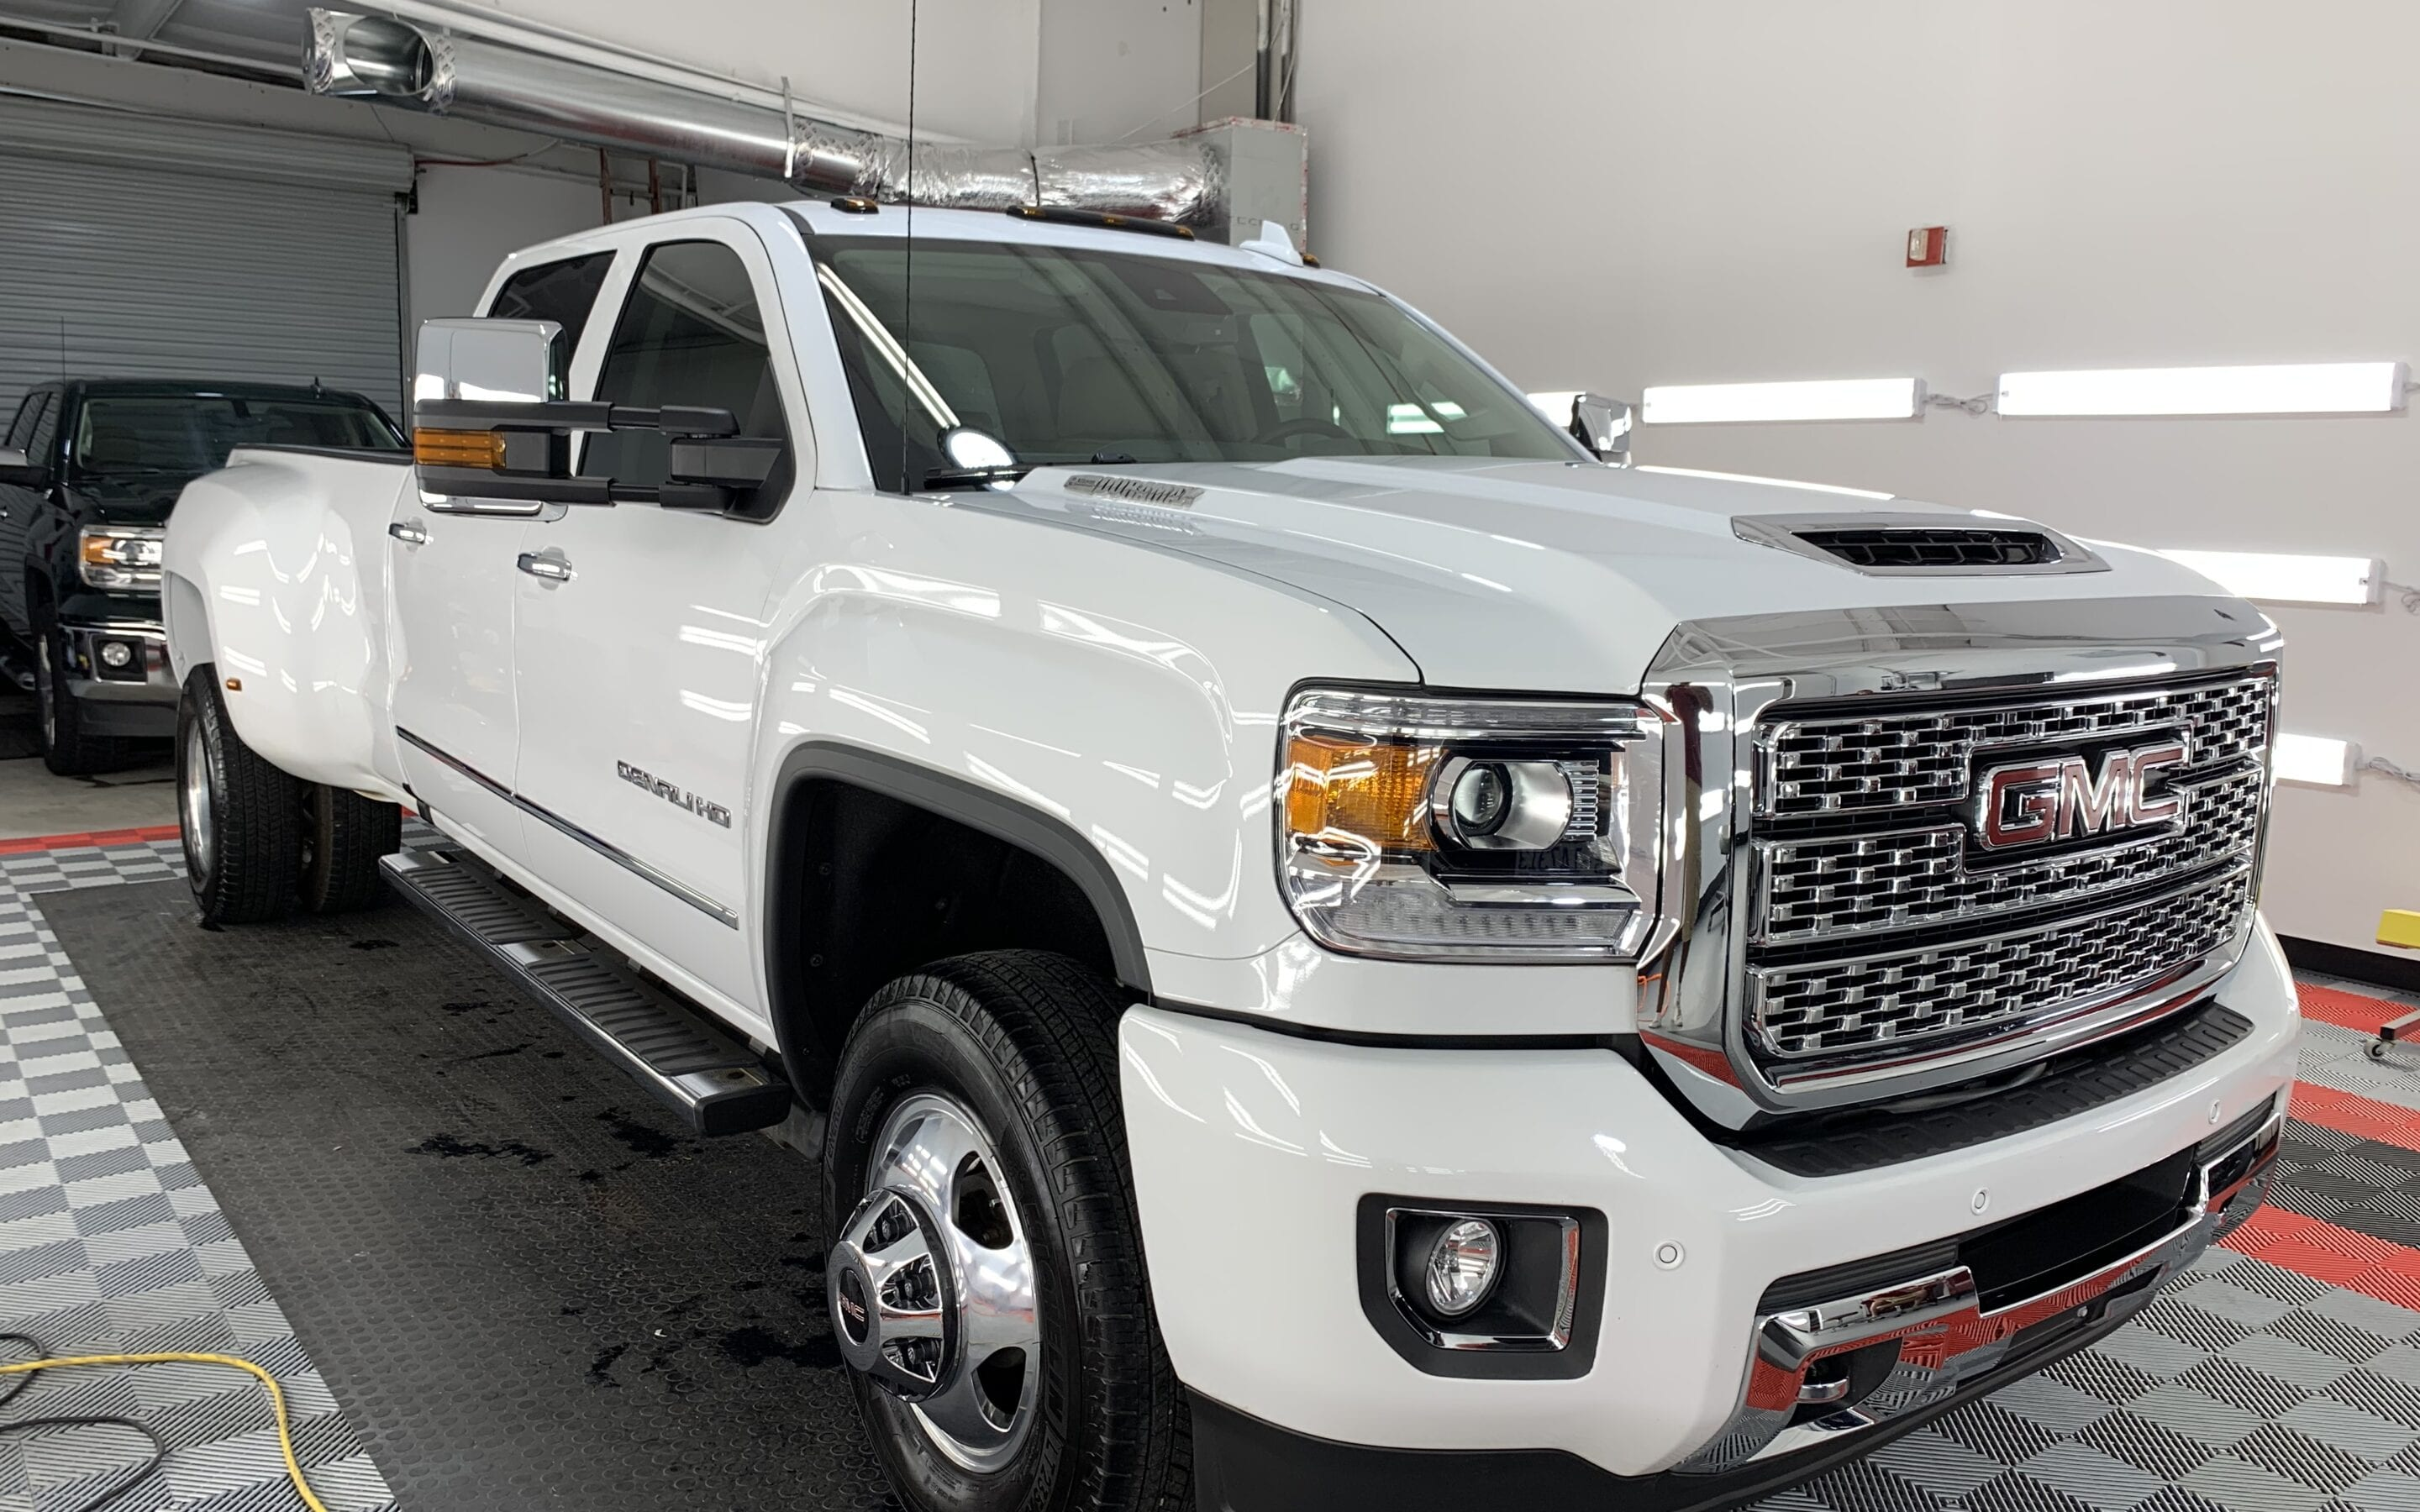 Full Detail of a 2017 GMC Sierra